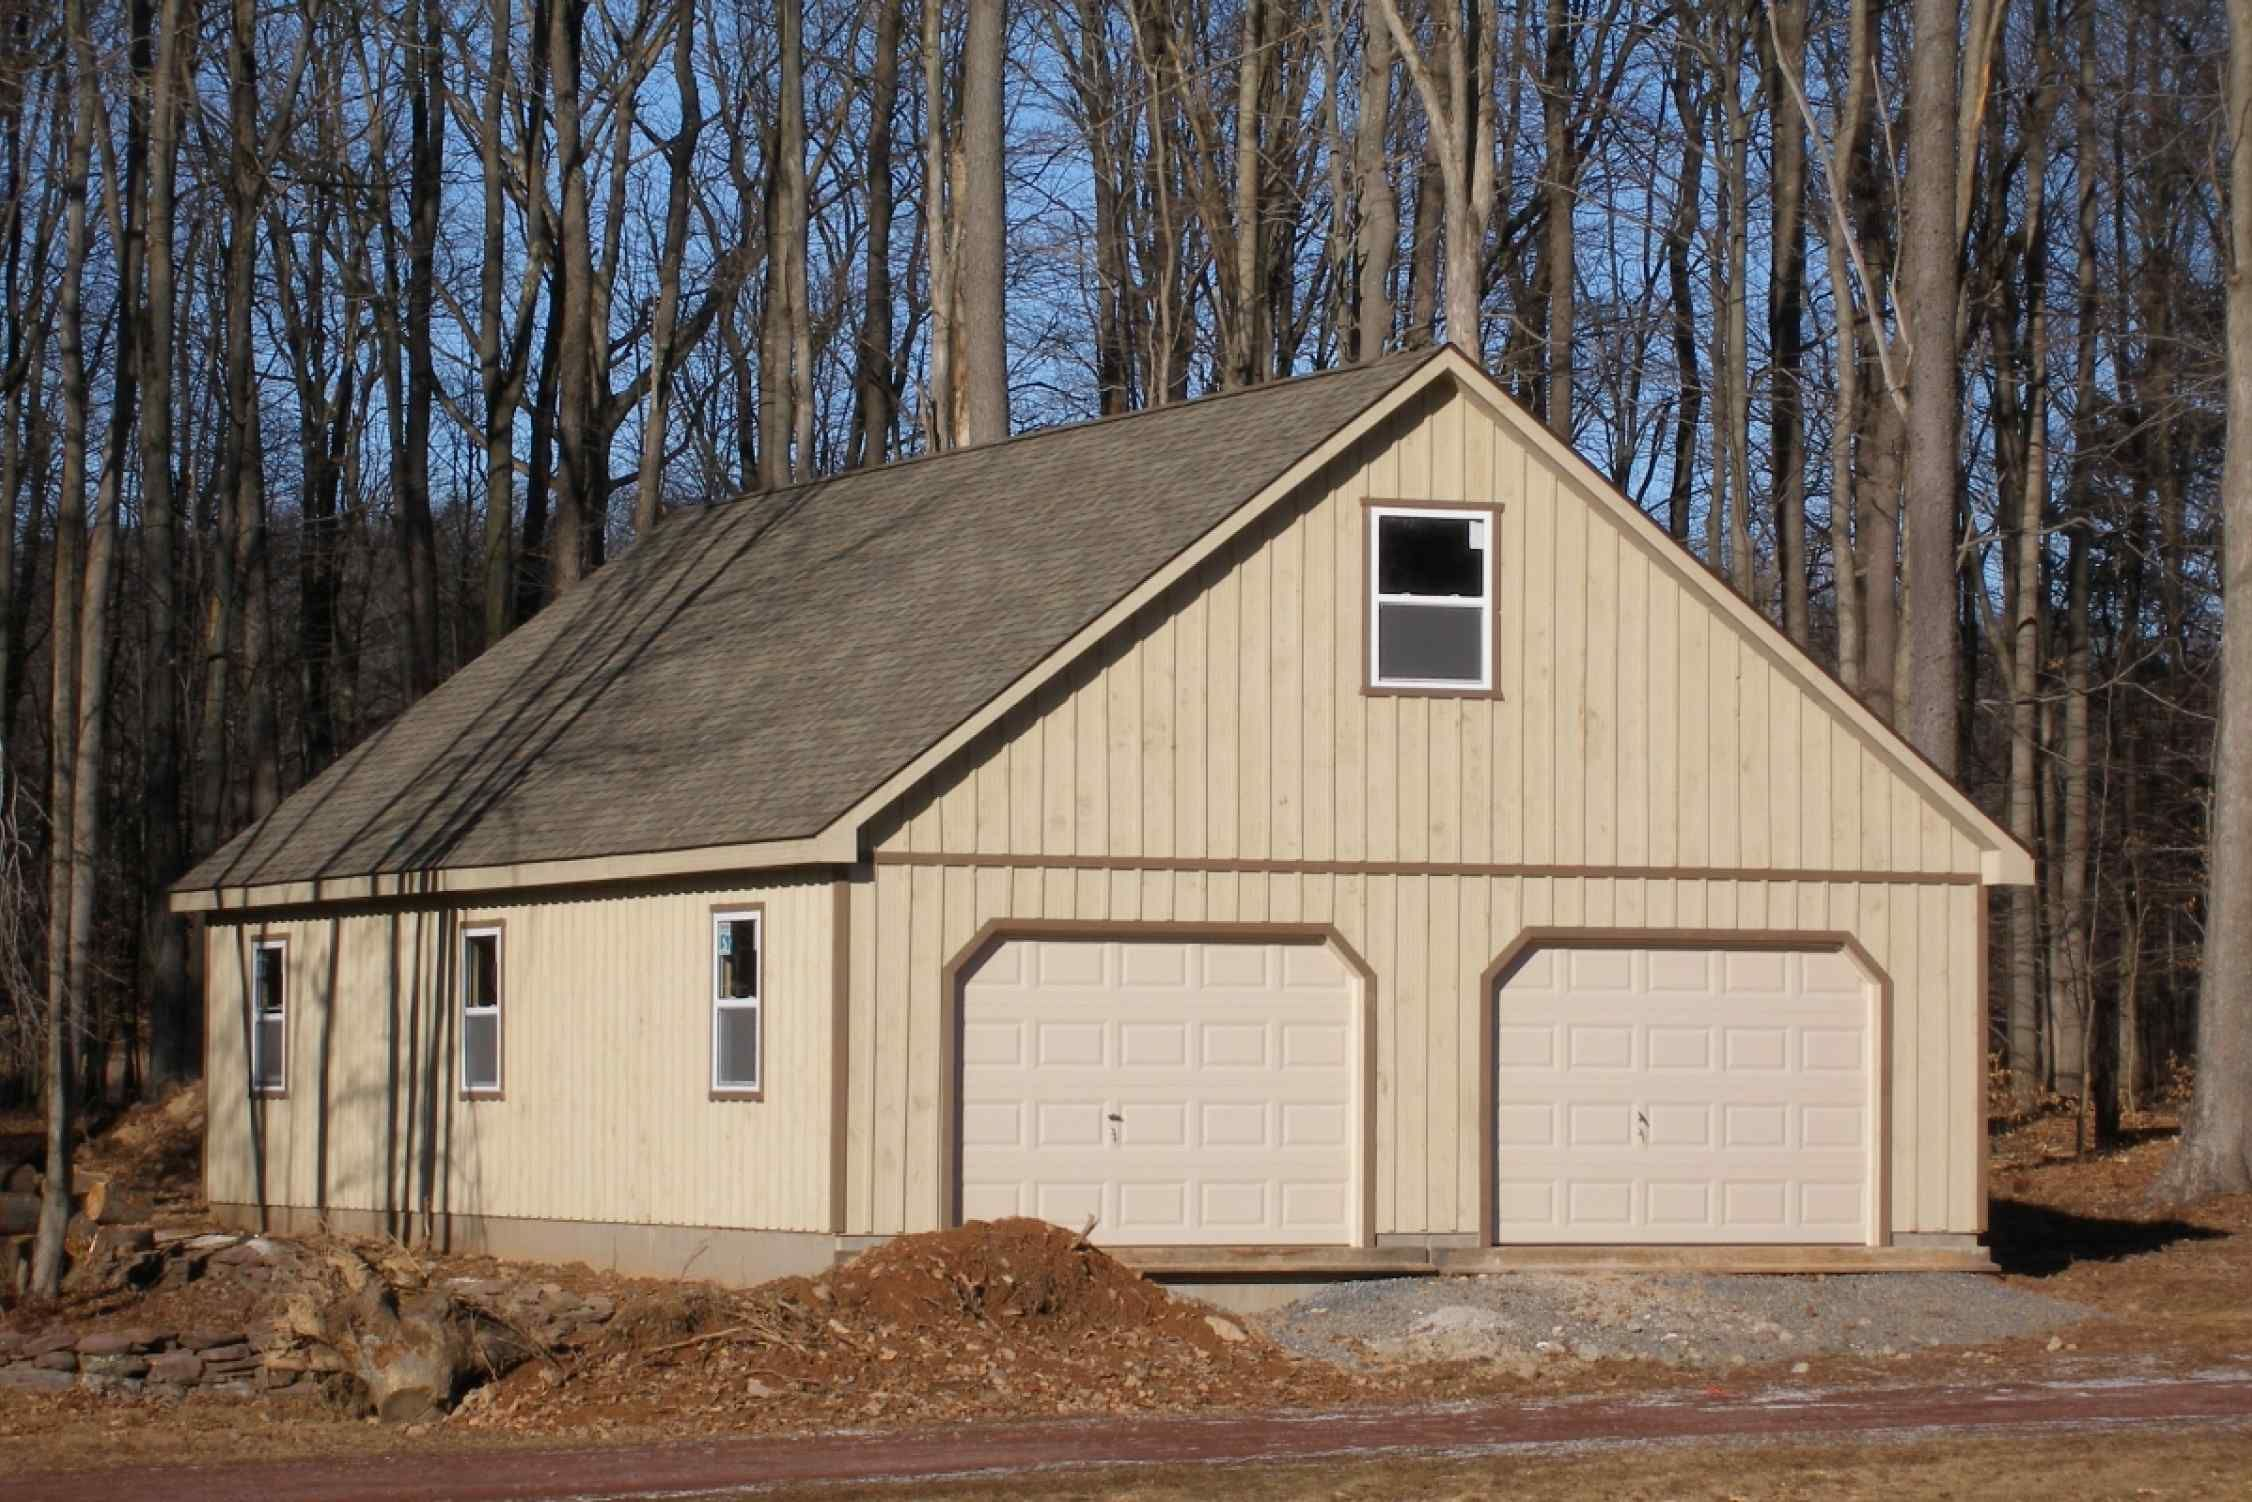 Pioneer Garages Hillside Structures Garage Design Roof Shingles Batten